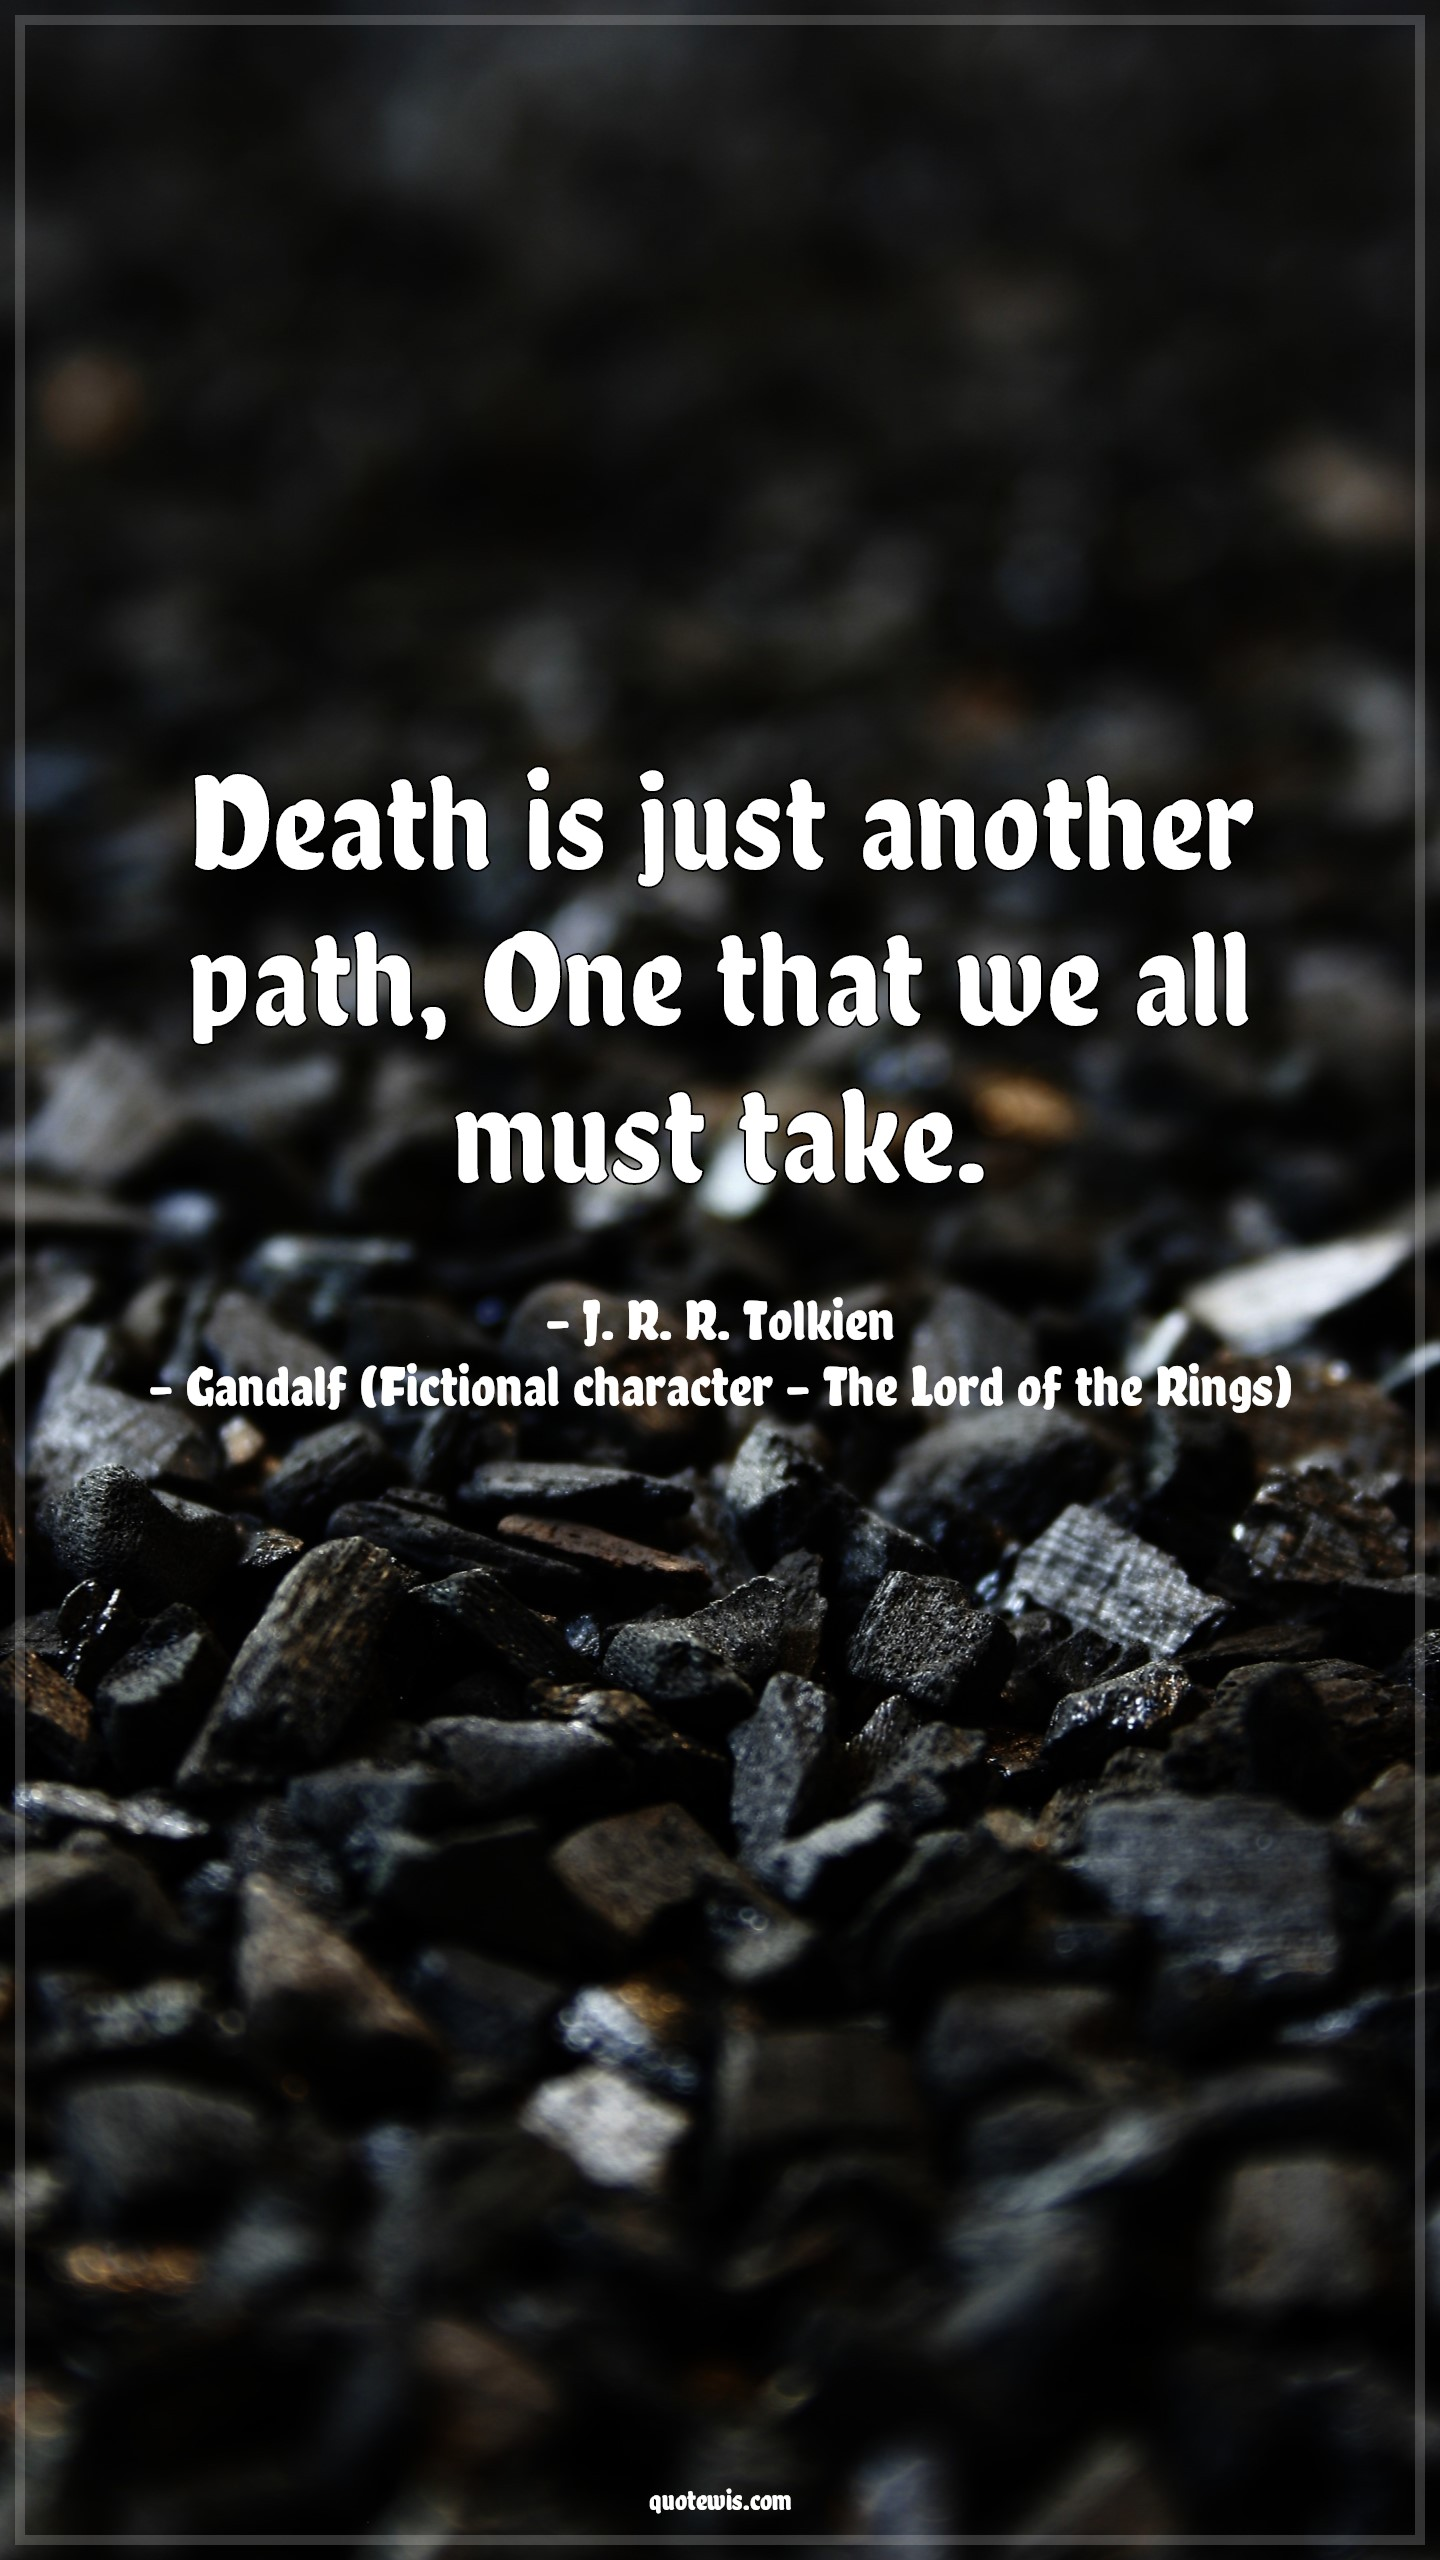 Death is just another path, One that we all must take.